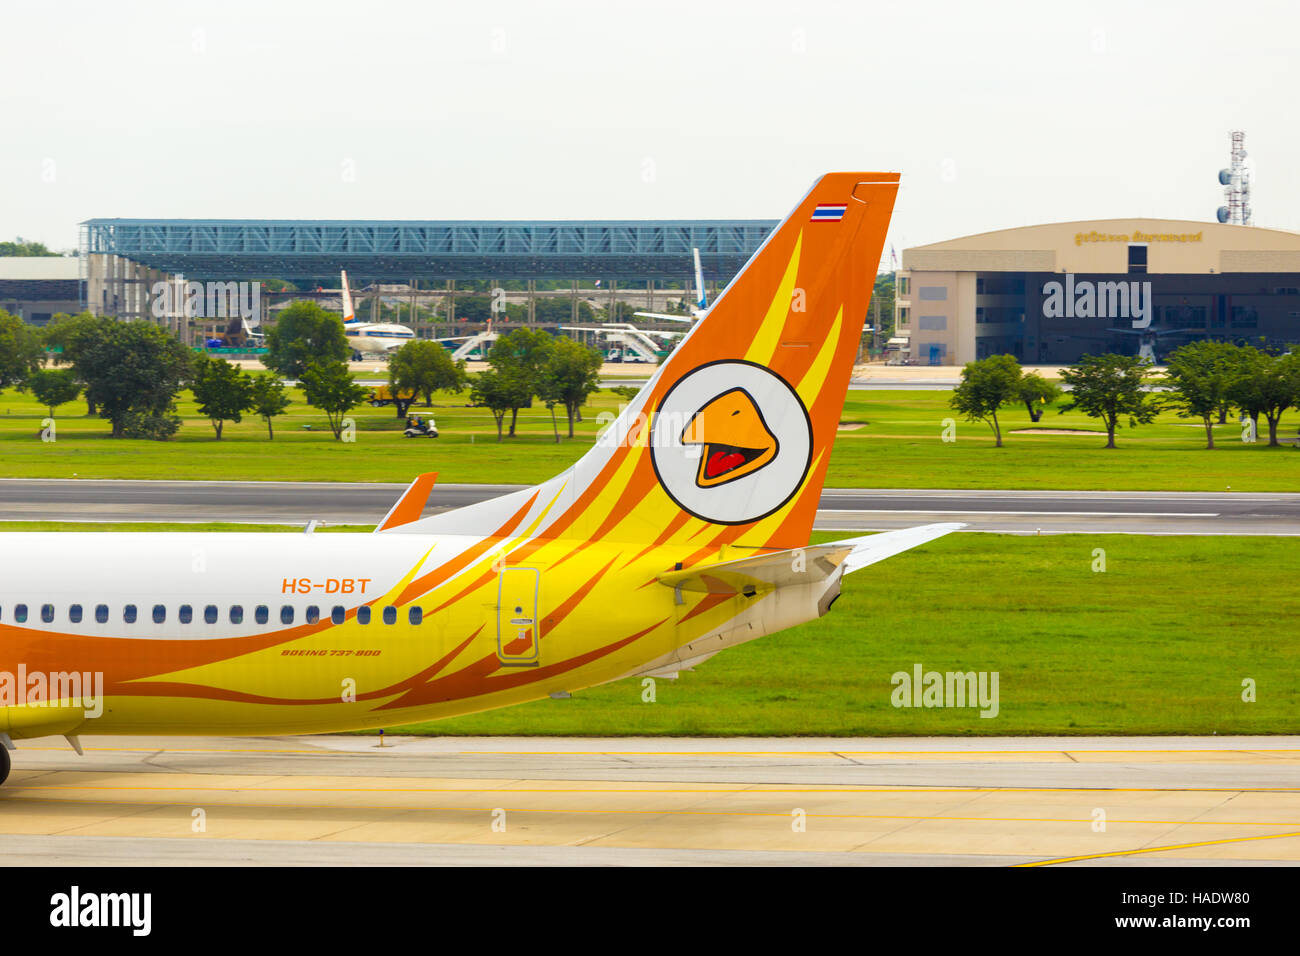 Golf course and golfers in cart visible behind the tail section and logo of low cost carrier, Nok Air airplane taxiing - Stock Image